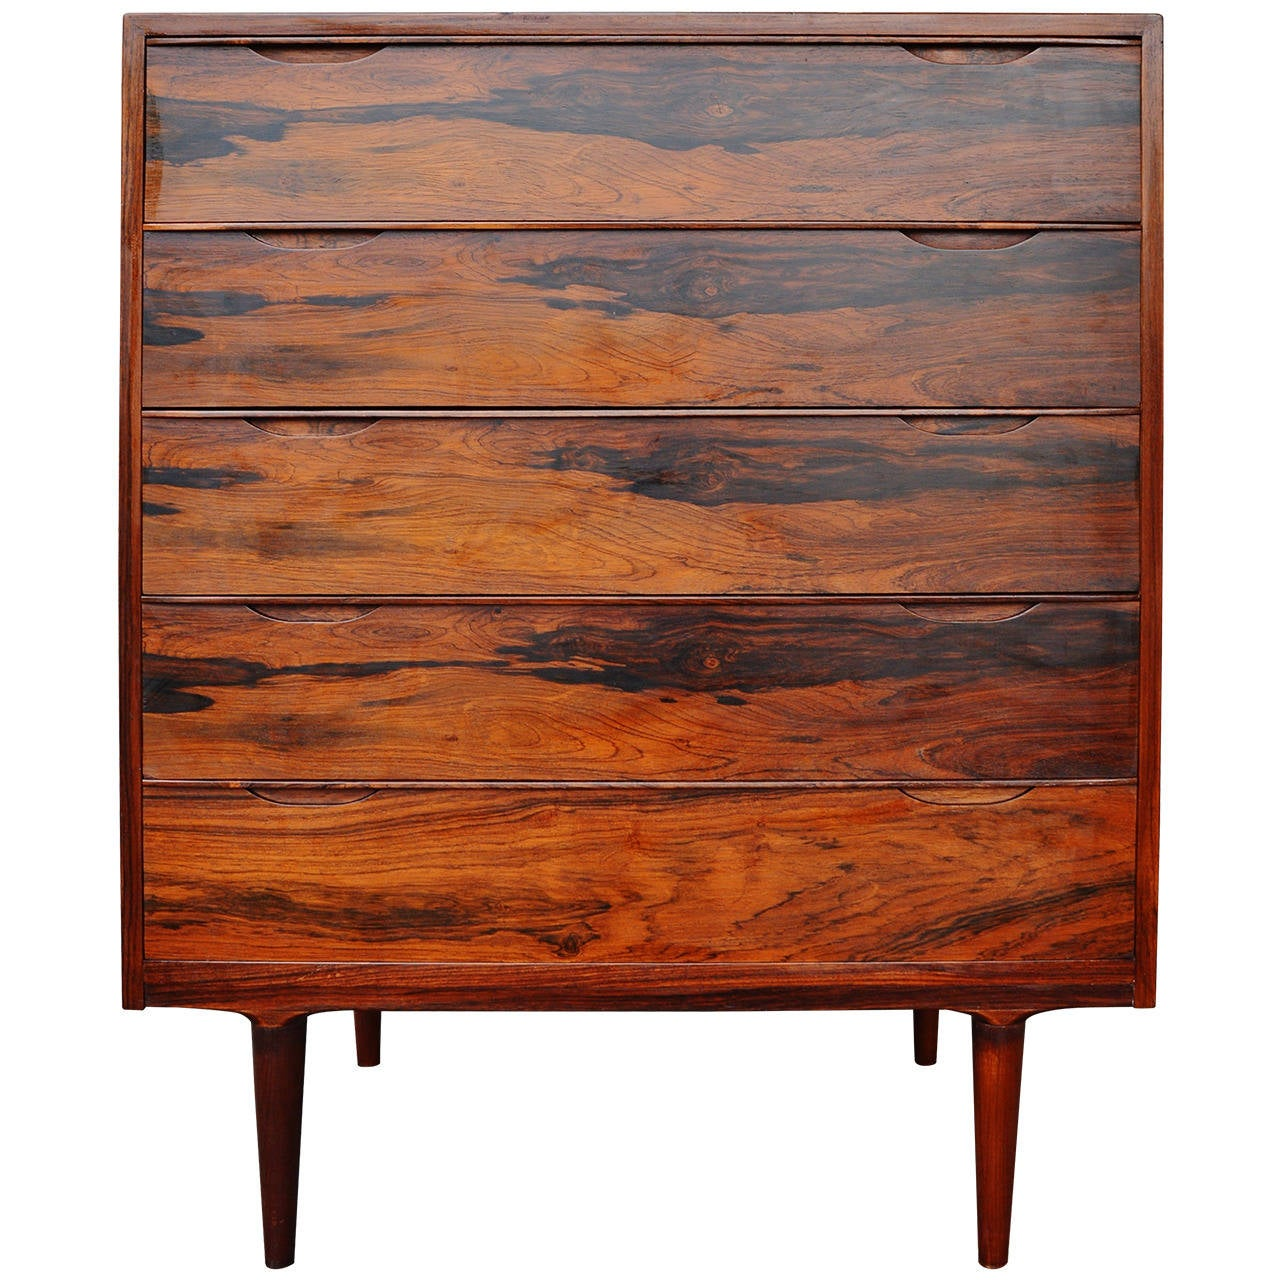 Danish modern rosewood highboy dresser or chest of drawers